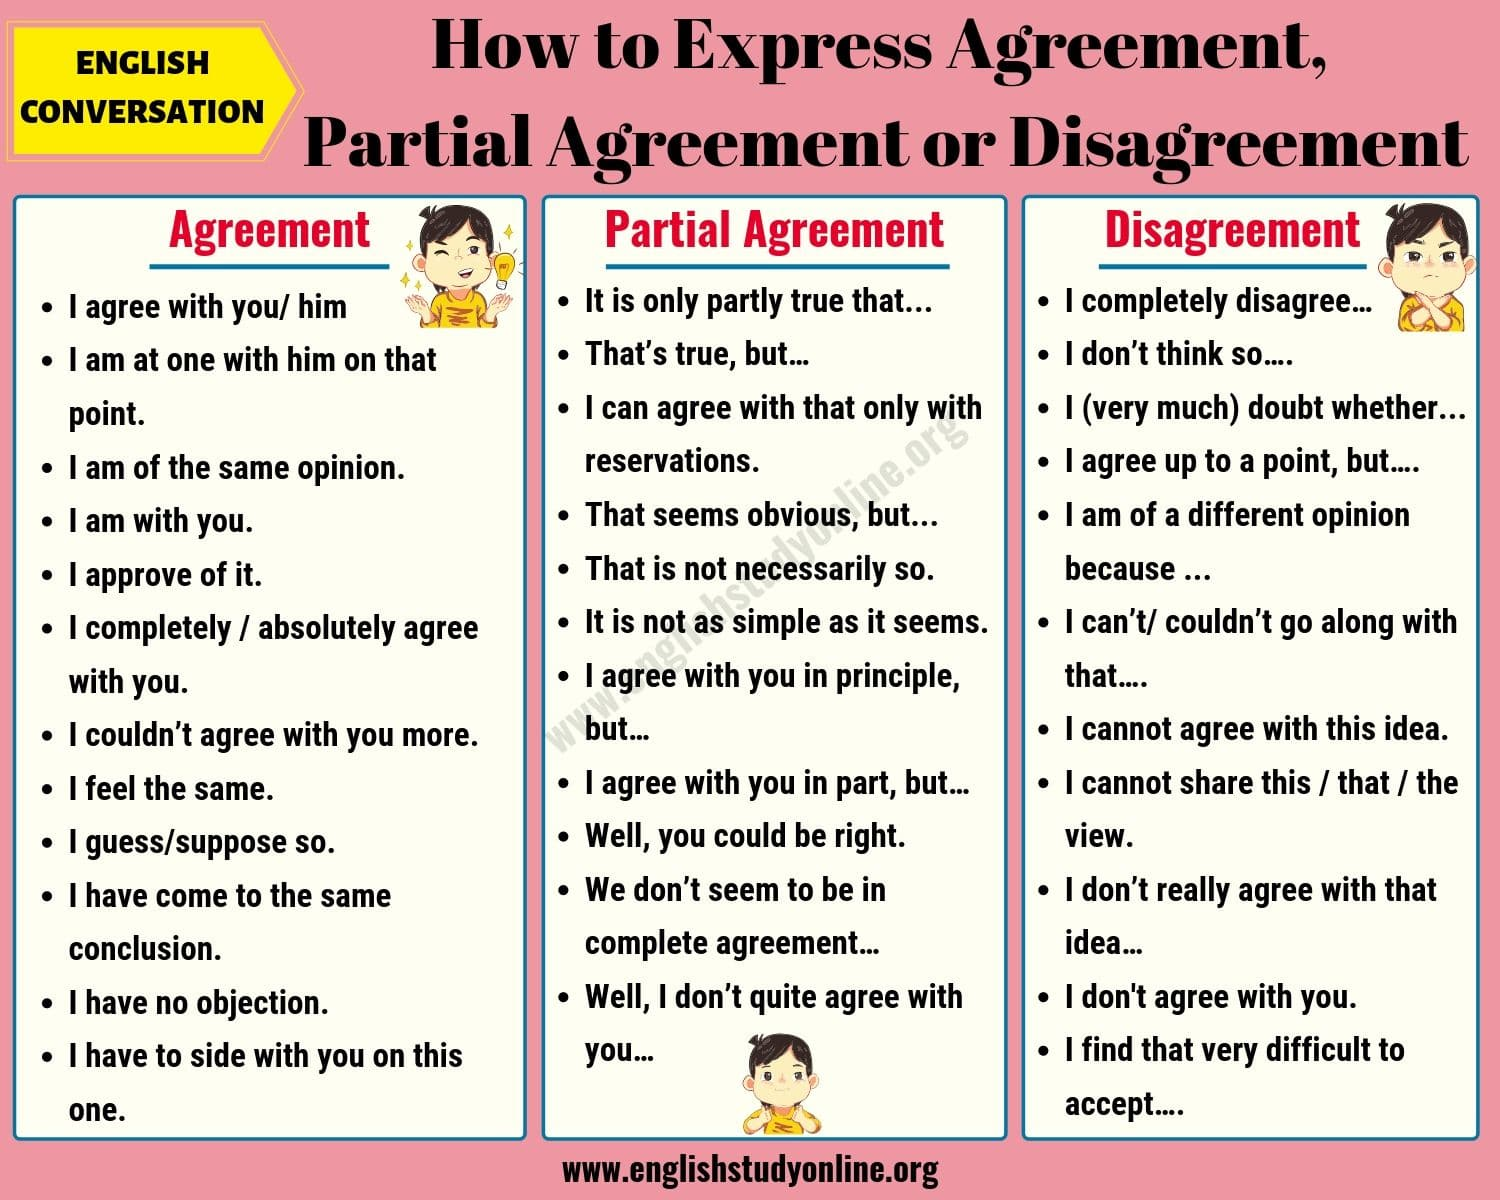 How to Express Agreement